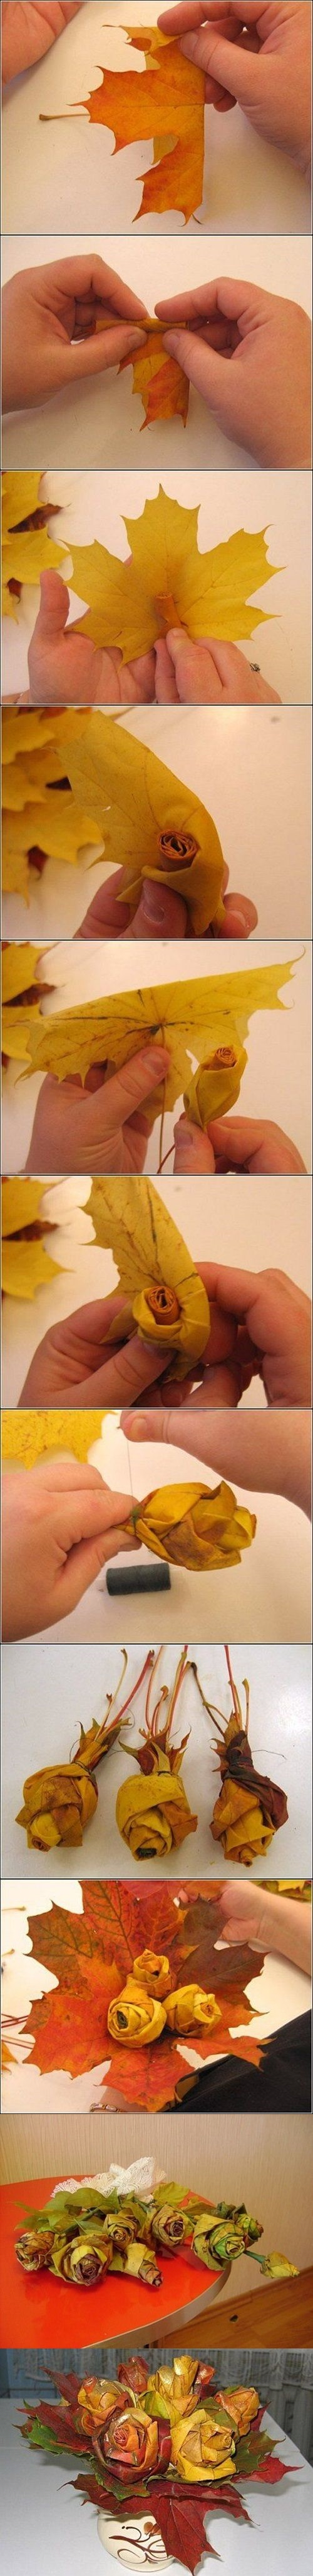 DIY-Maple-Leaf-Rose-Bouquet instructions